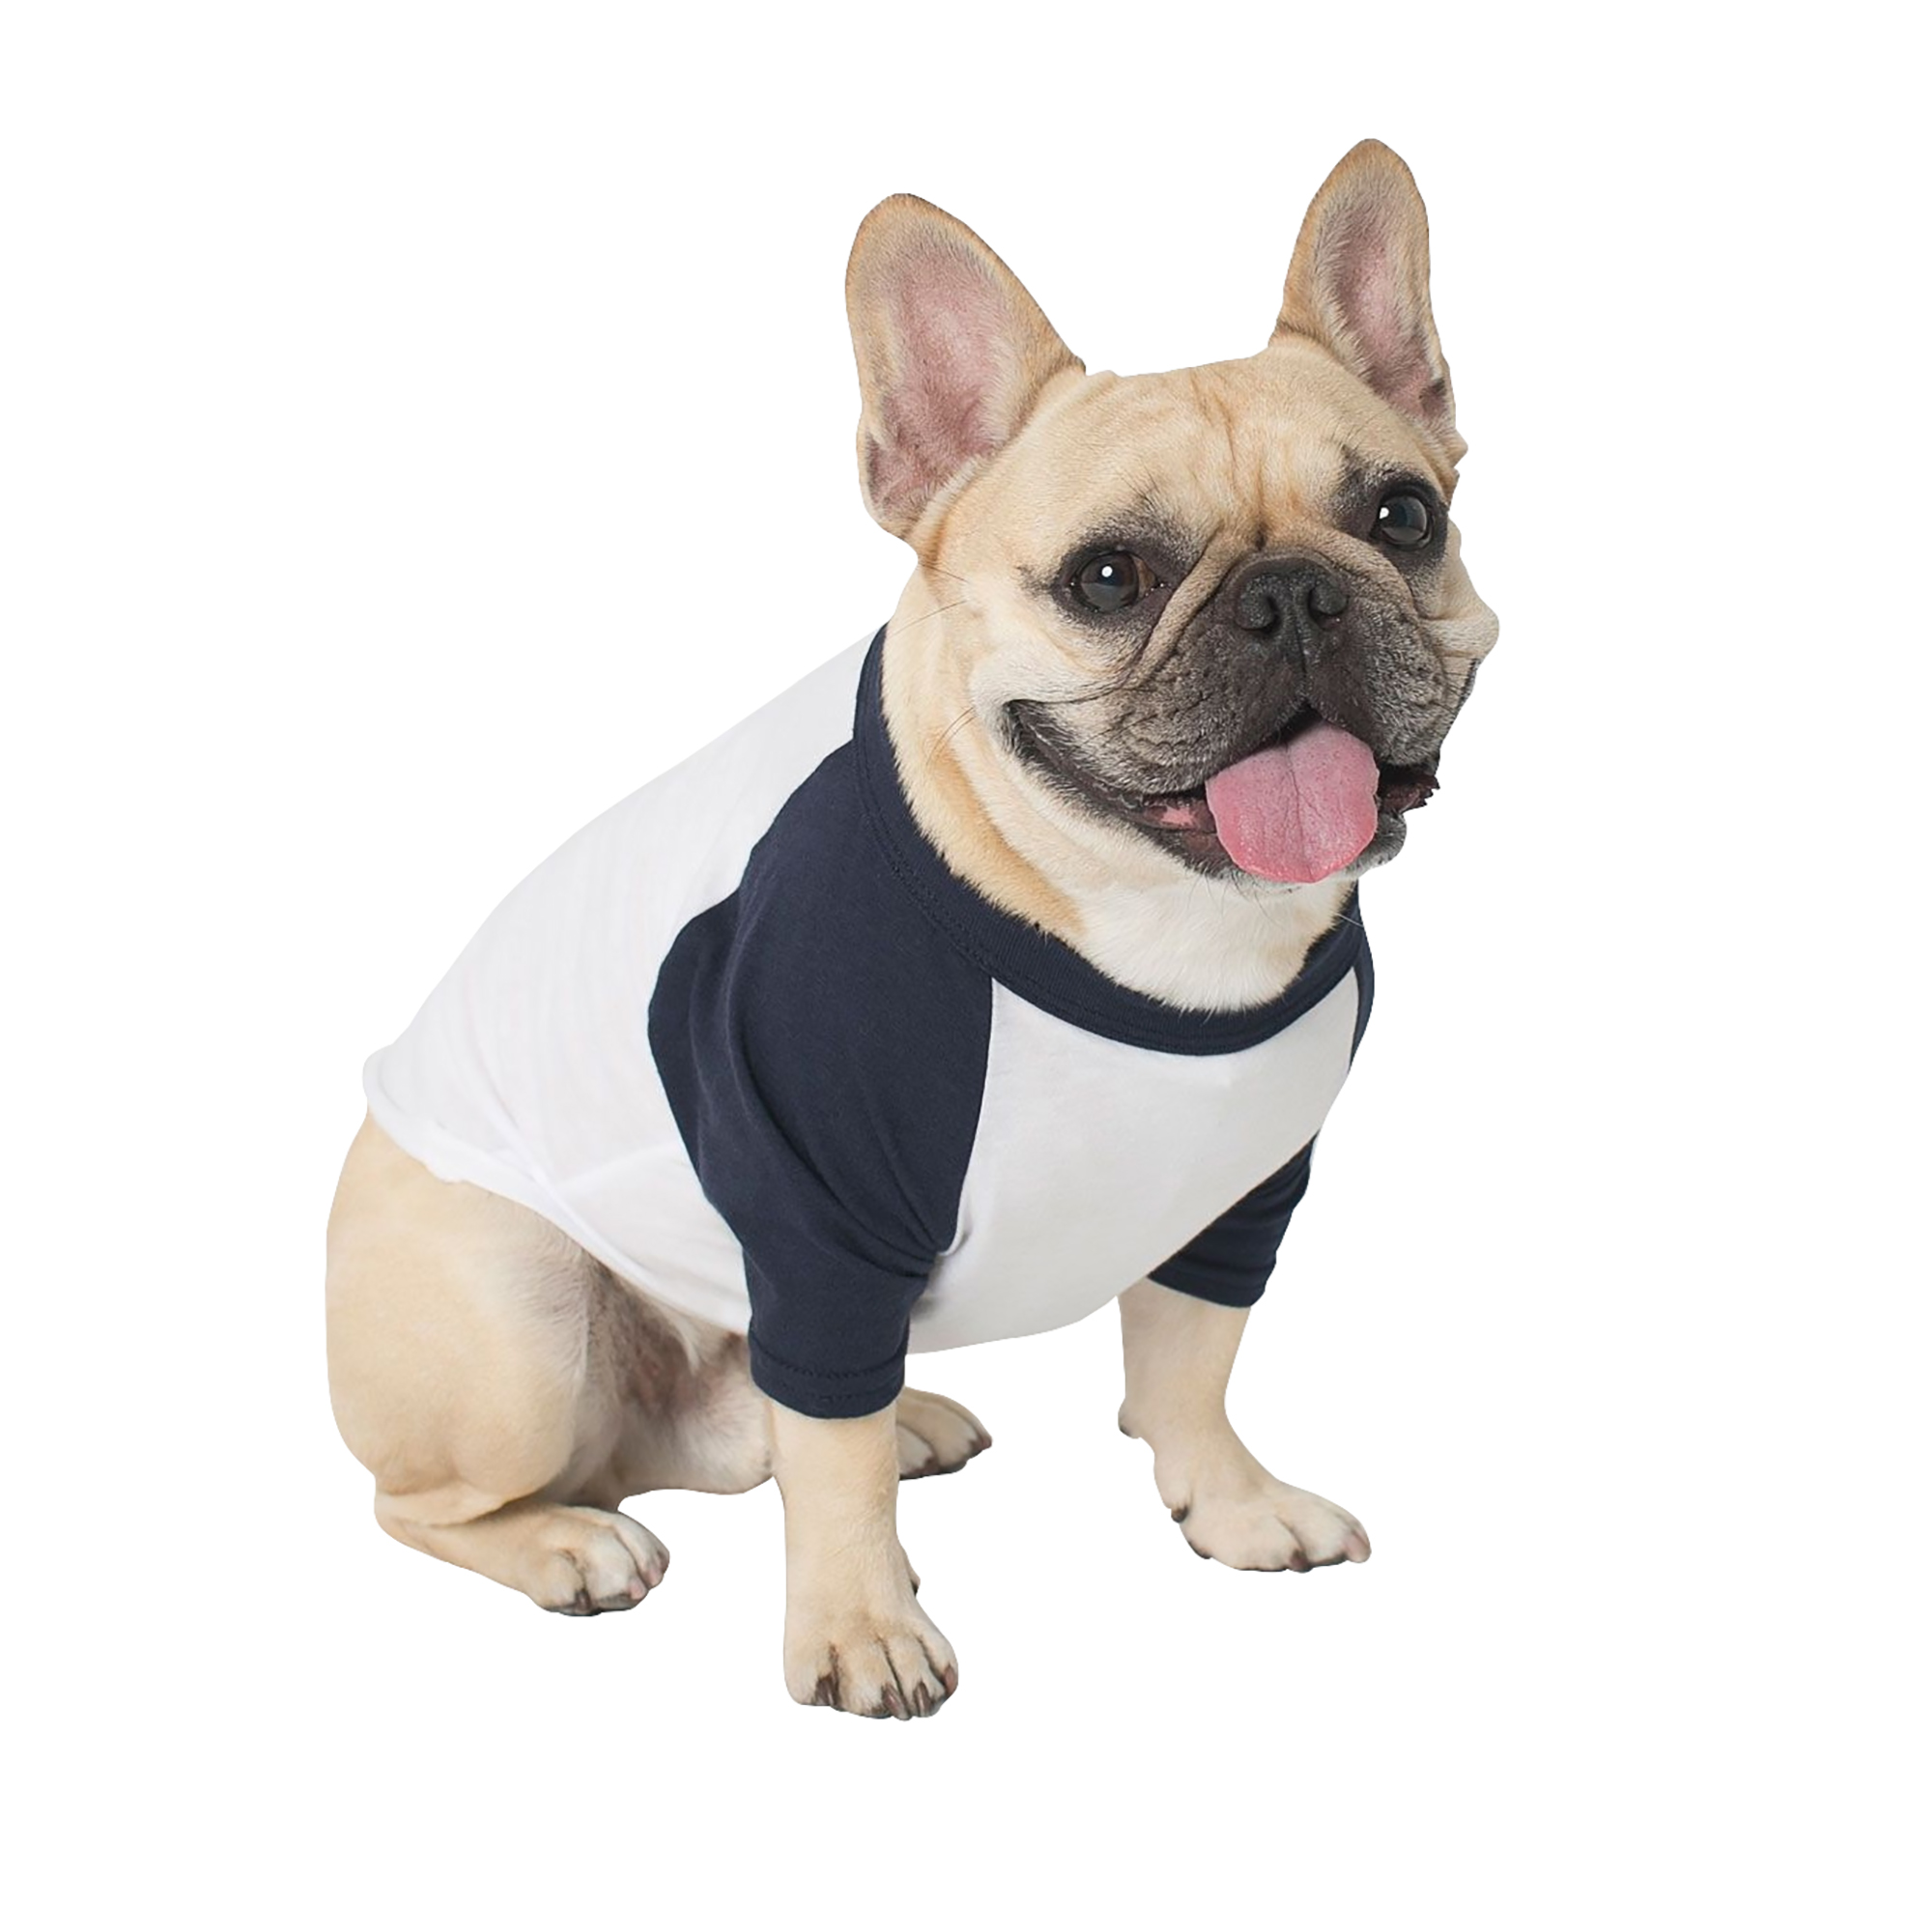 Design your own t shirt american apparel - American Apparel Two Tone 3 4 Sleeve Dog